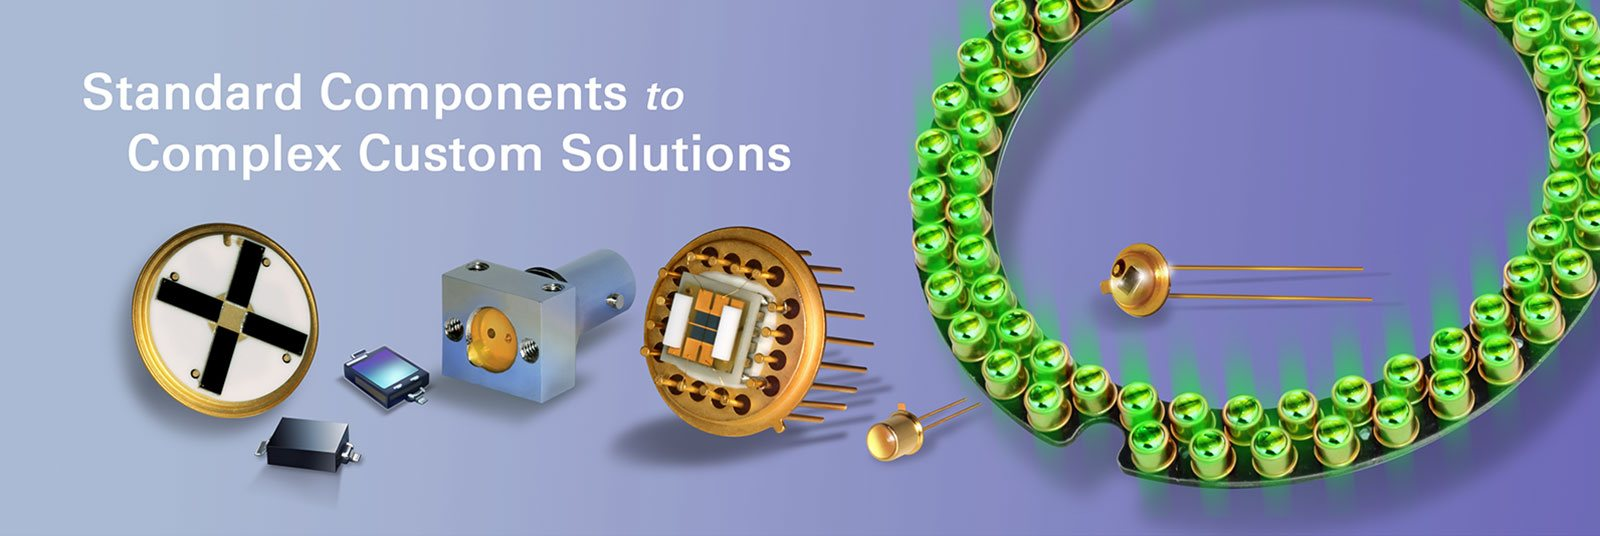 Standard components to complex custom solutions.